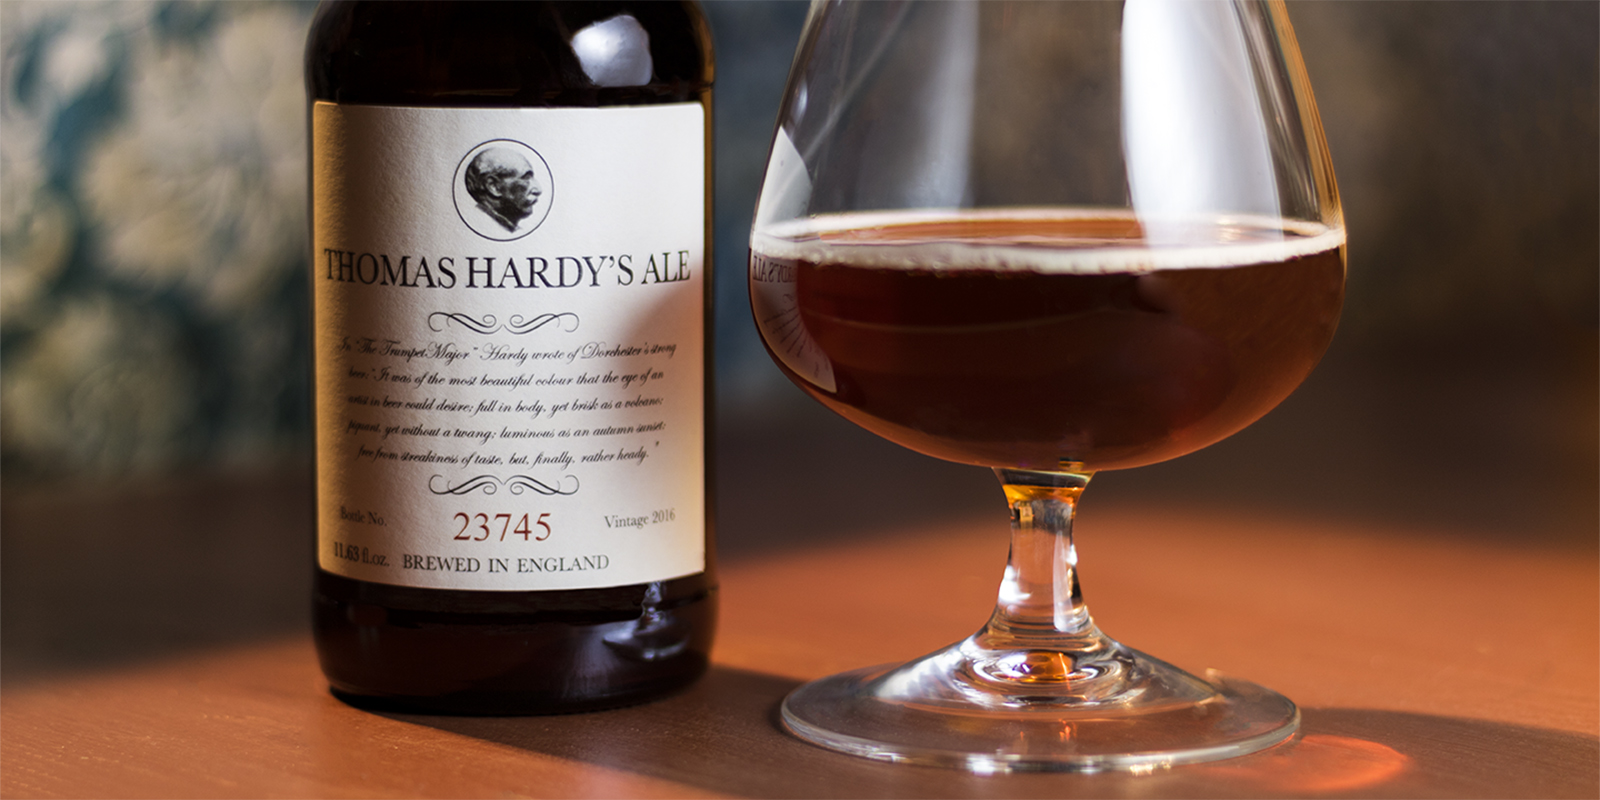 How to enjoy a Thomas Hardy's Ale